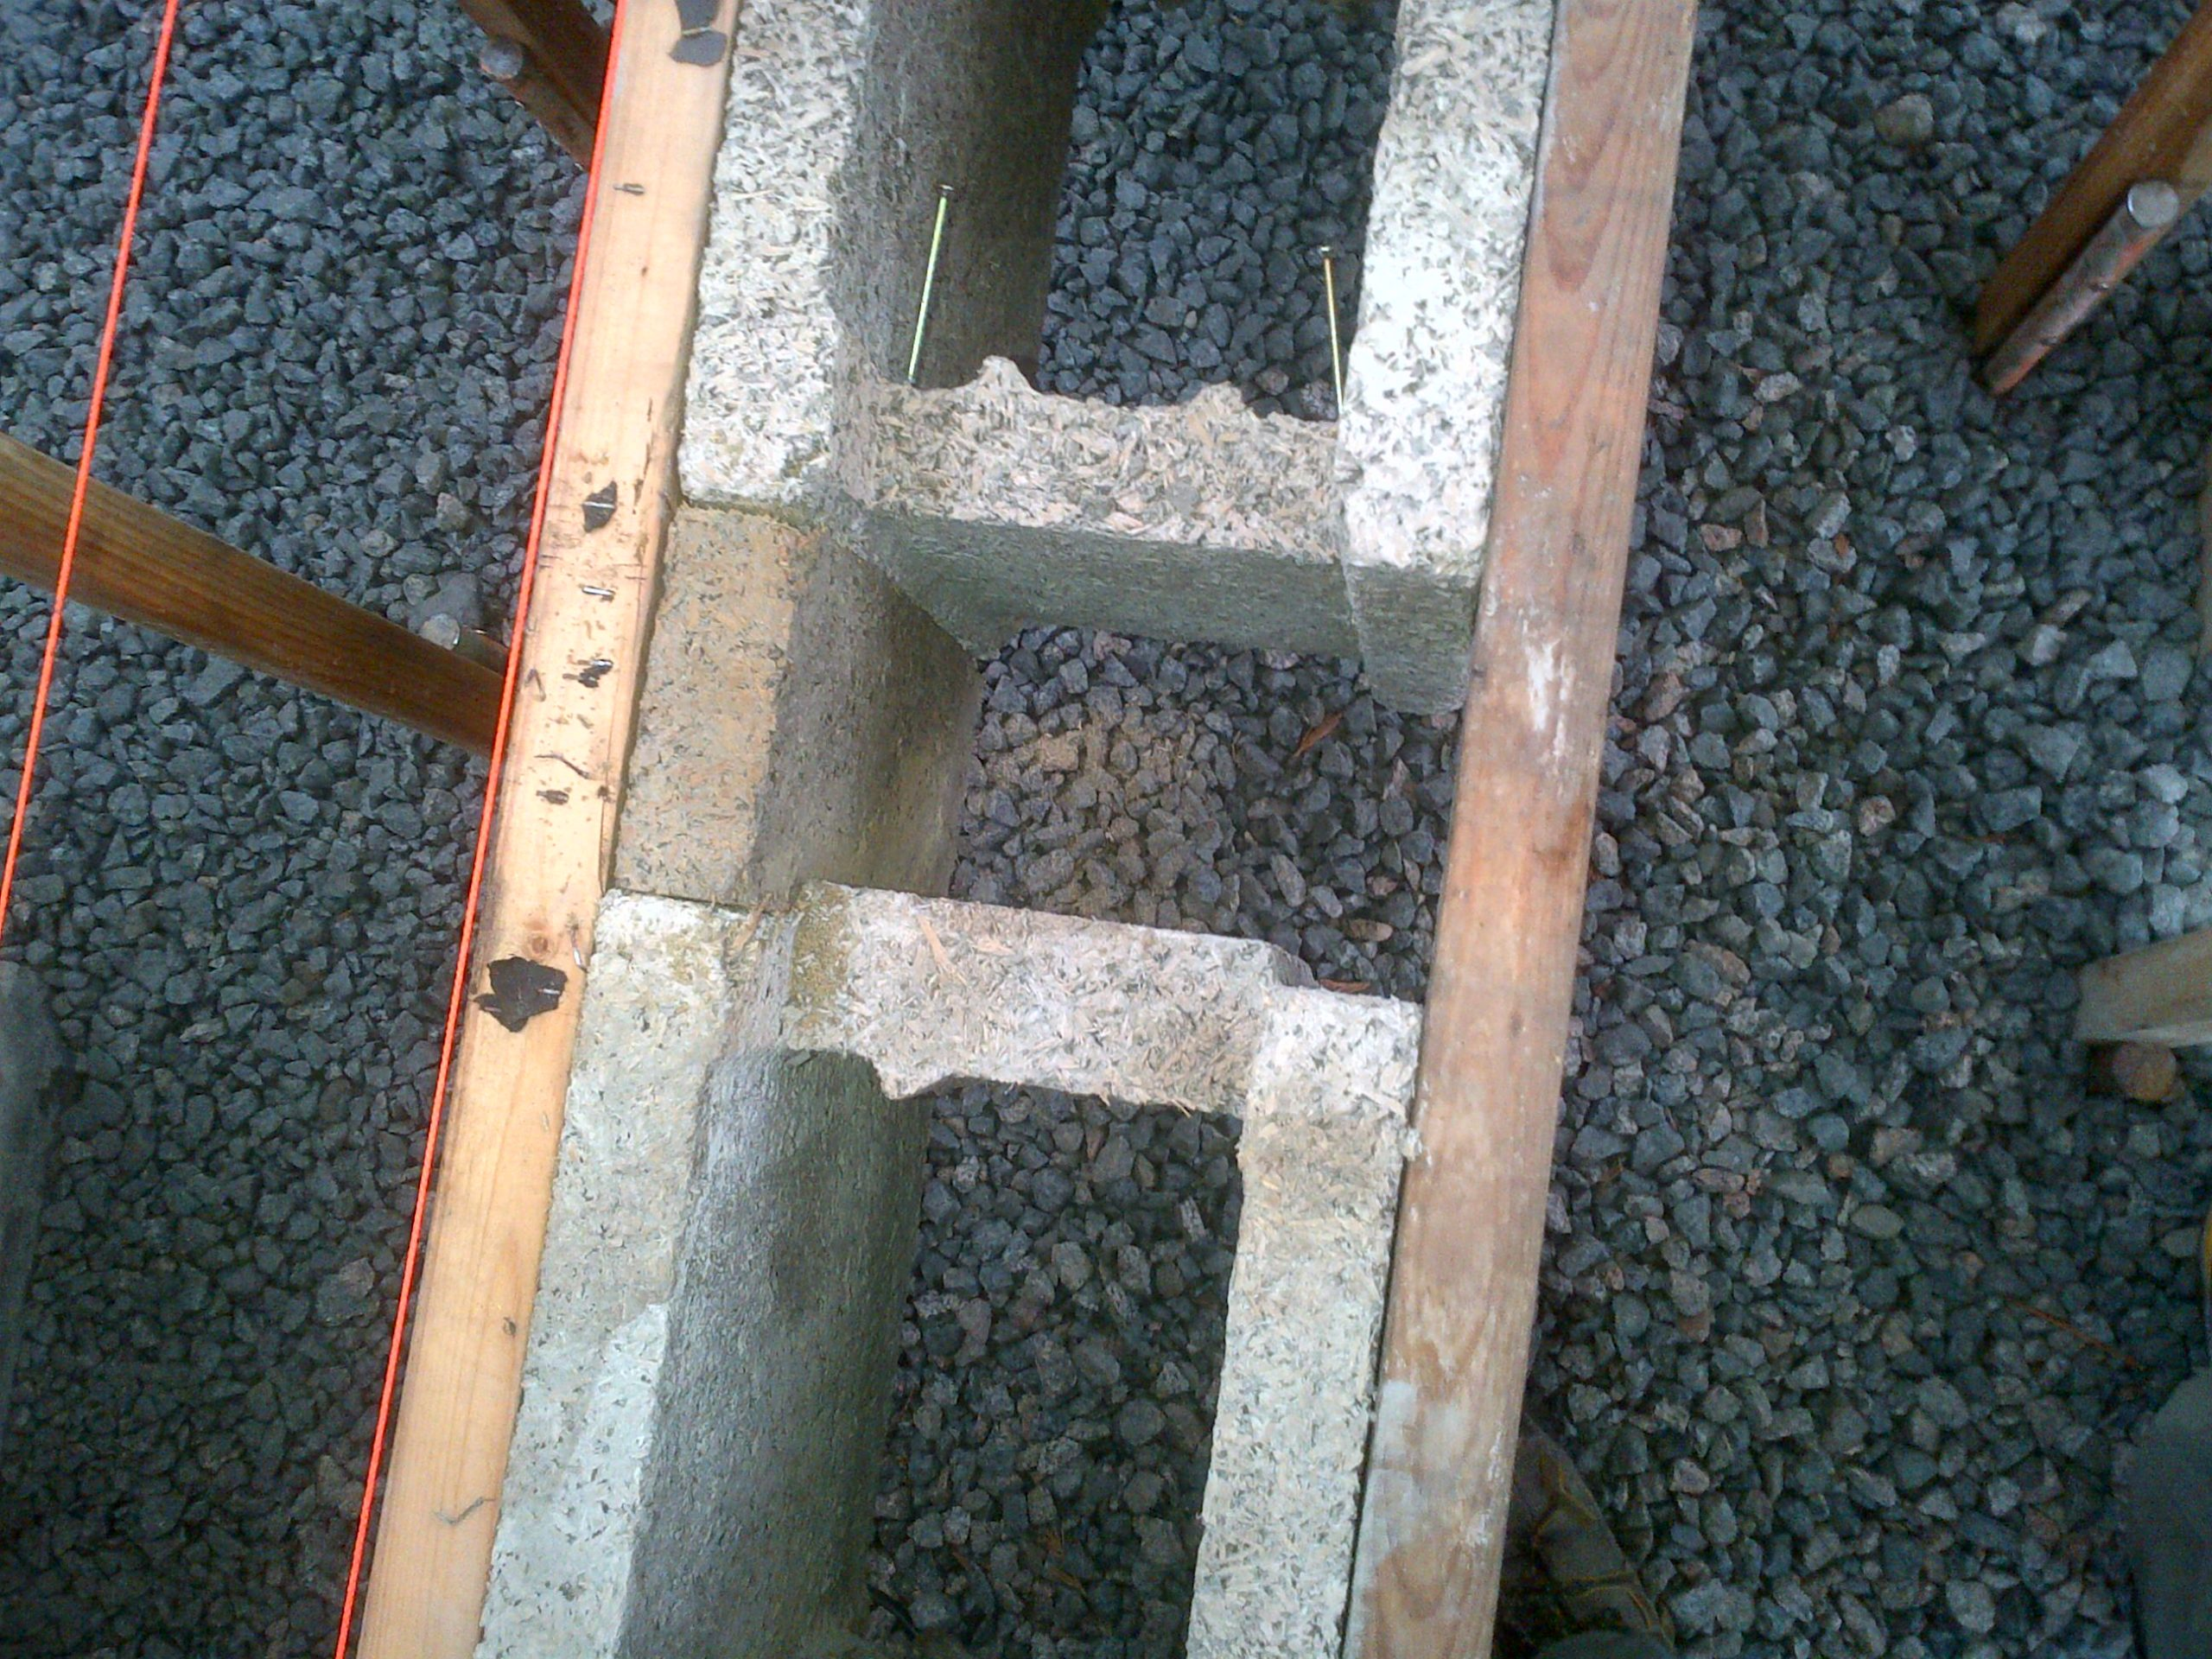 Step 2 - Cut side panels from a cut-off or broken block and insert and secure with screws